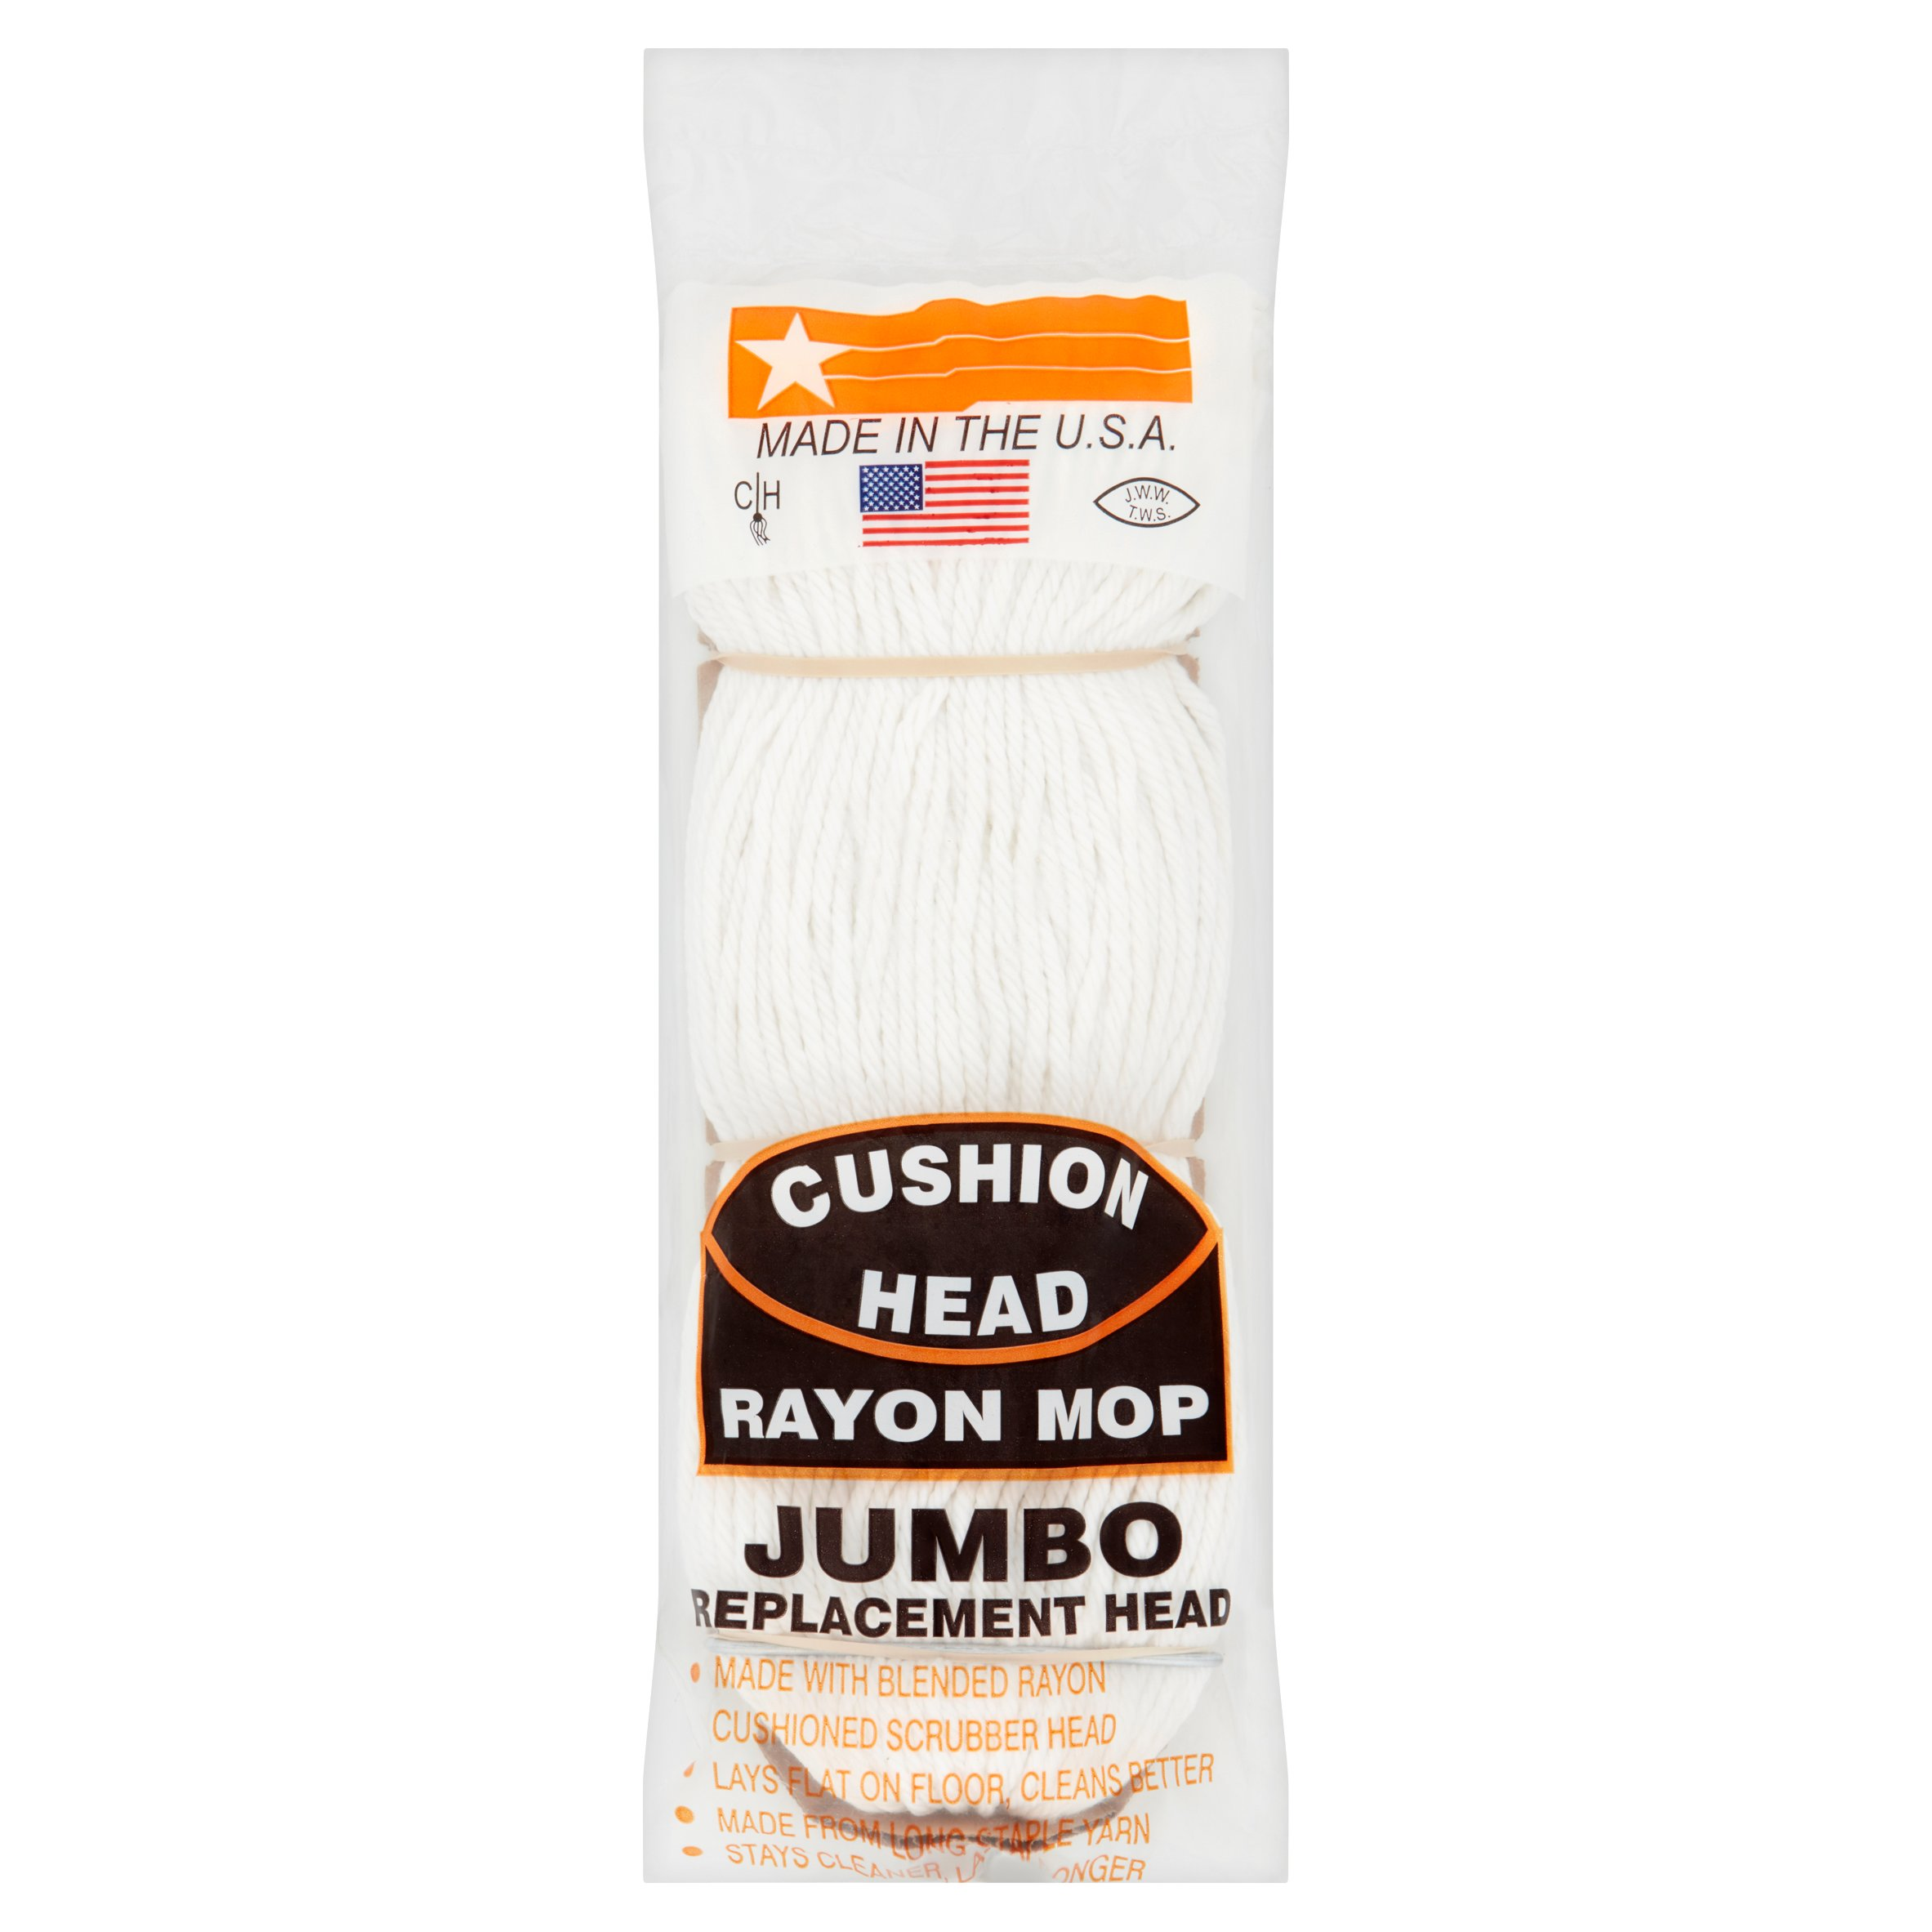 Cushion Head Jumbo Rayon Mop Replacement Head